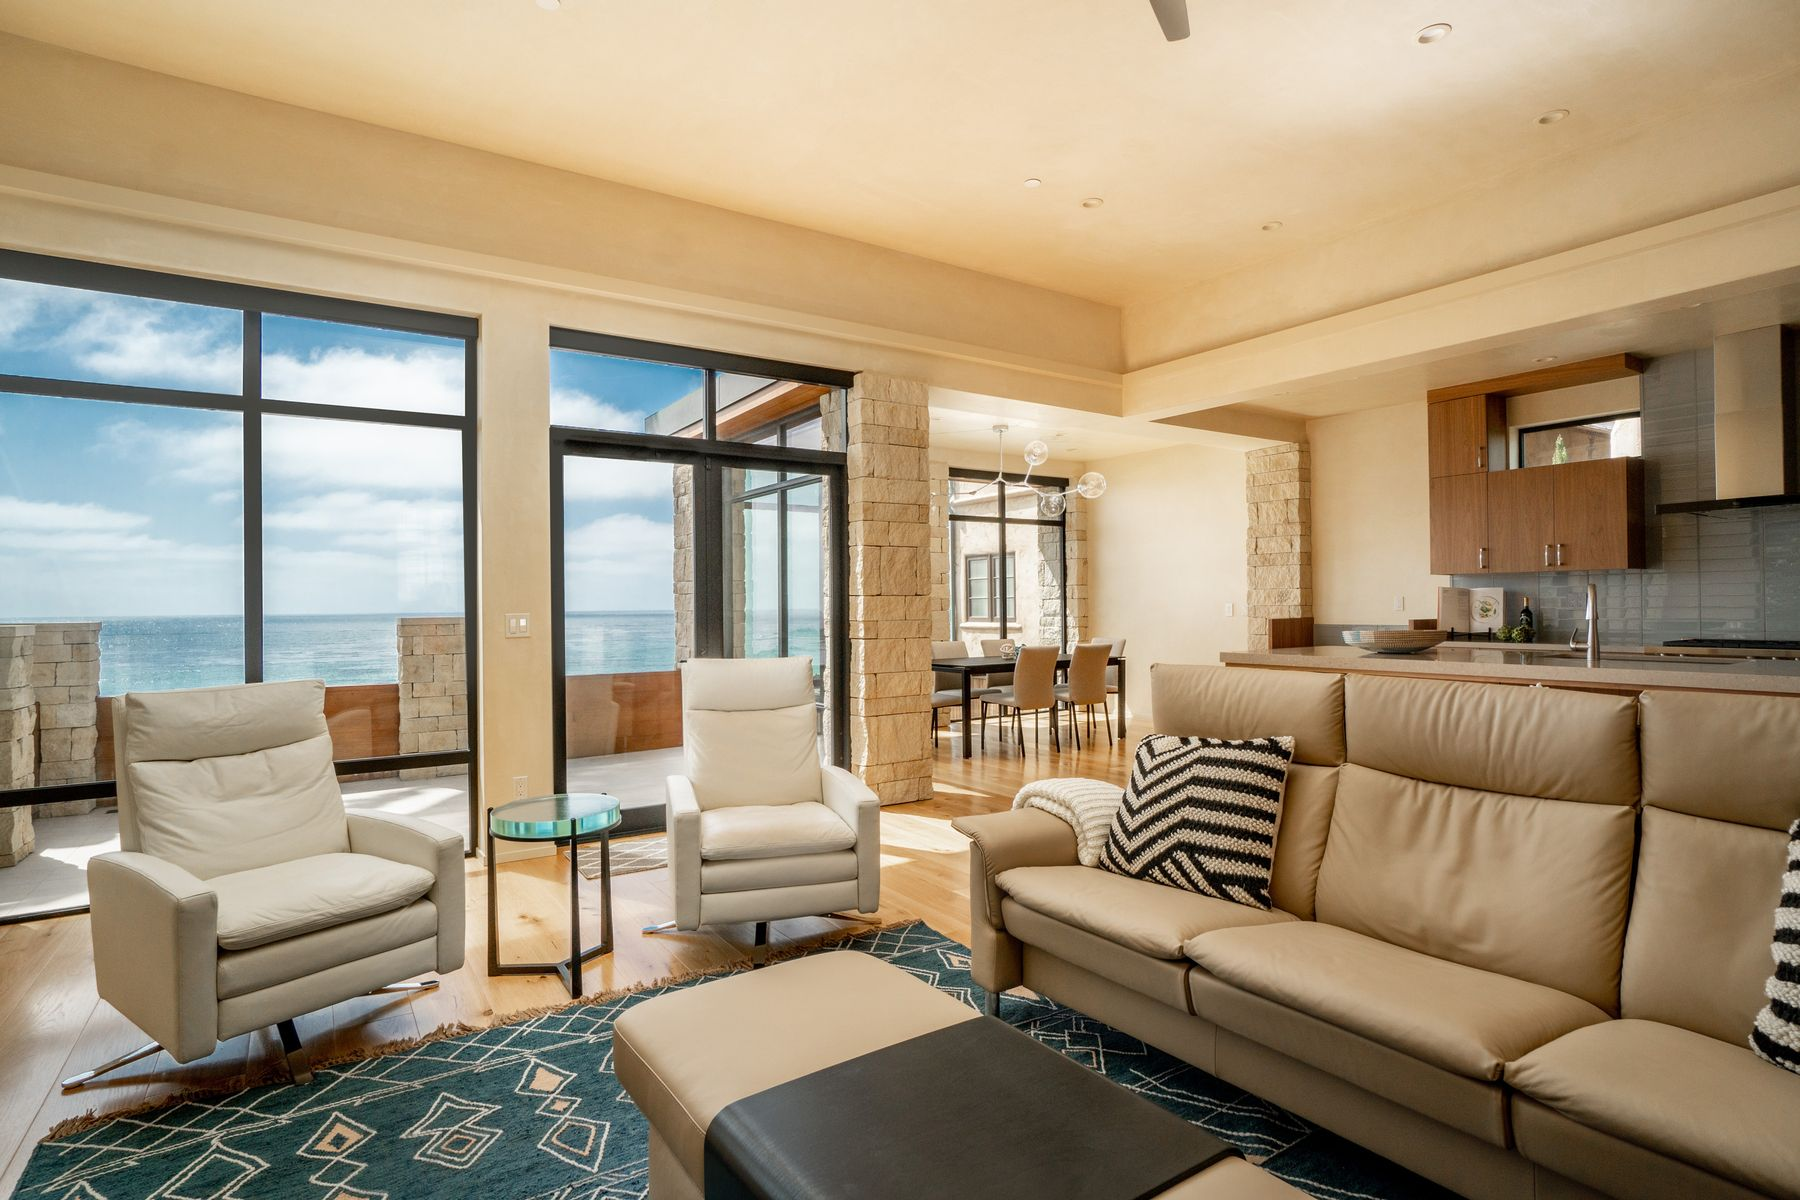 Residenza monofamiliare in vendita in 0 Scenic 4 Ne Of 13th, Carmel By The Sea, California ,93921